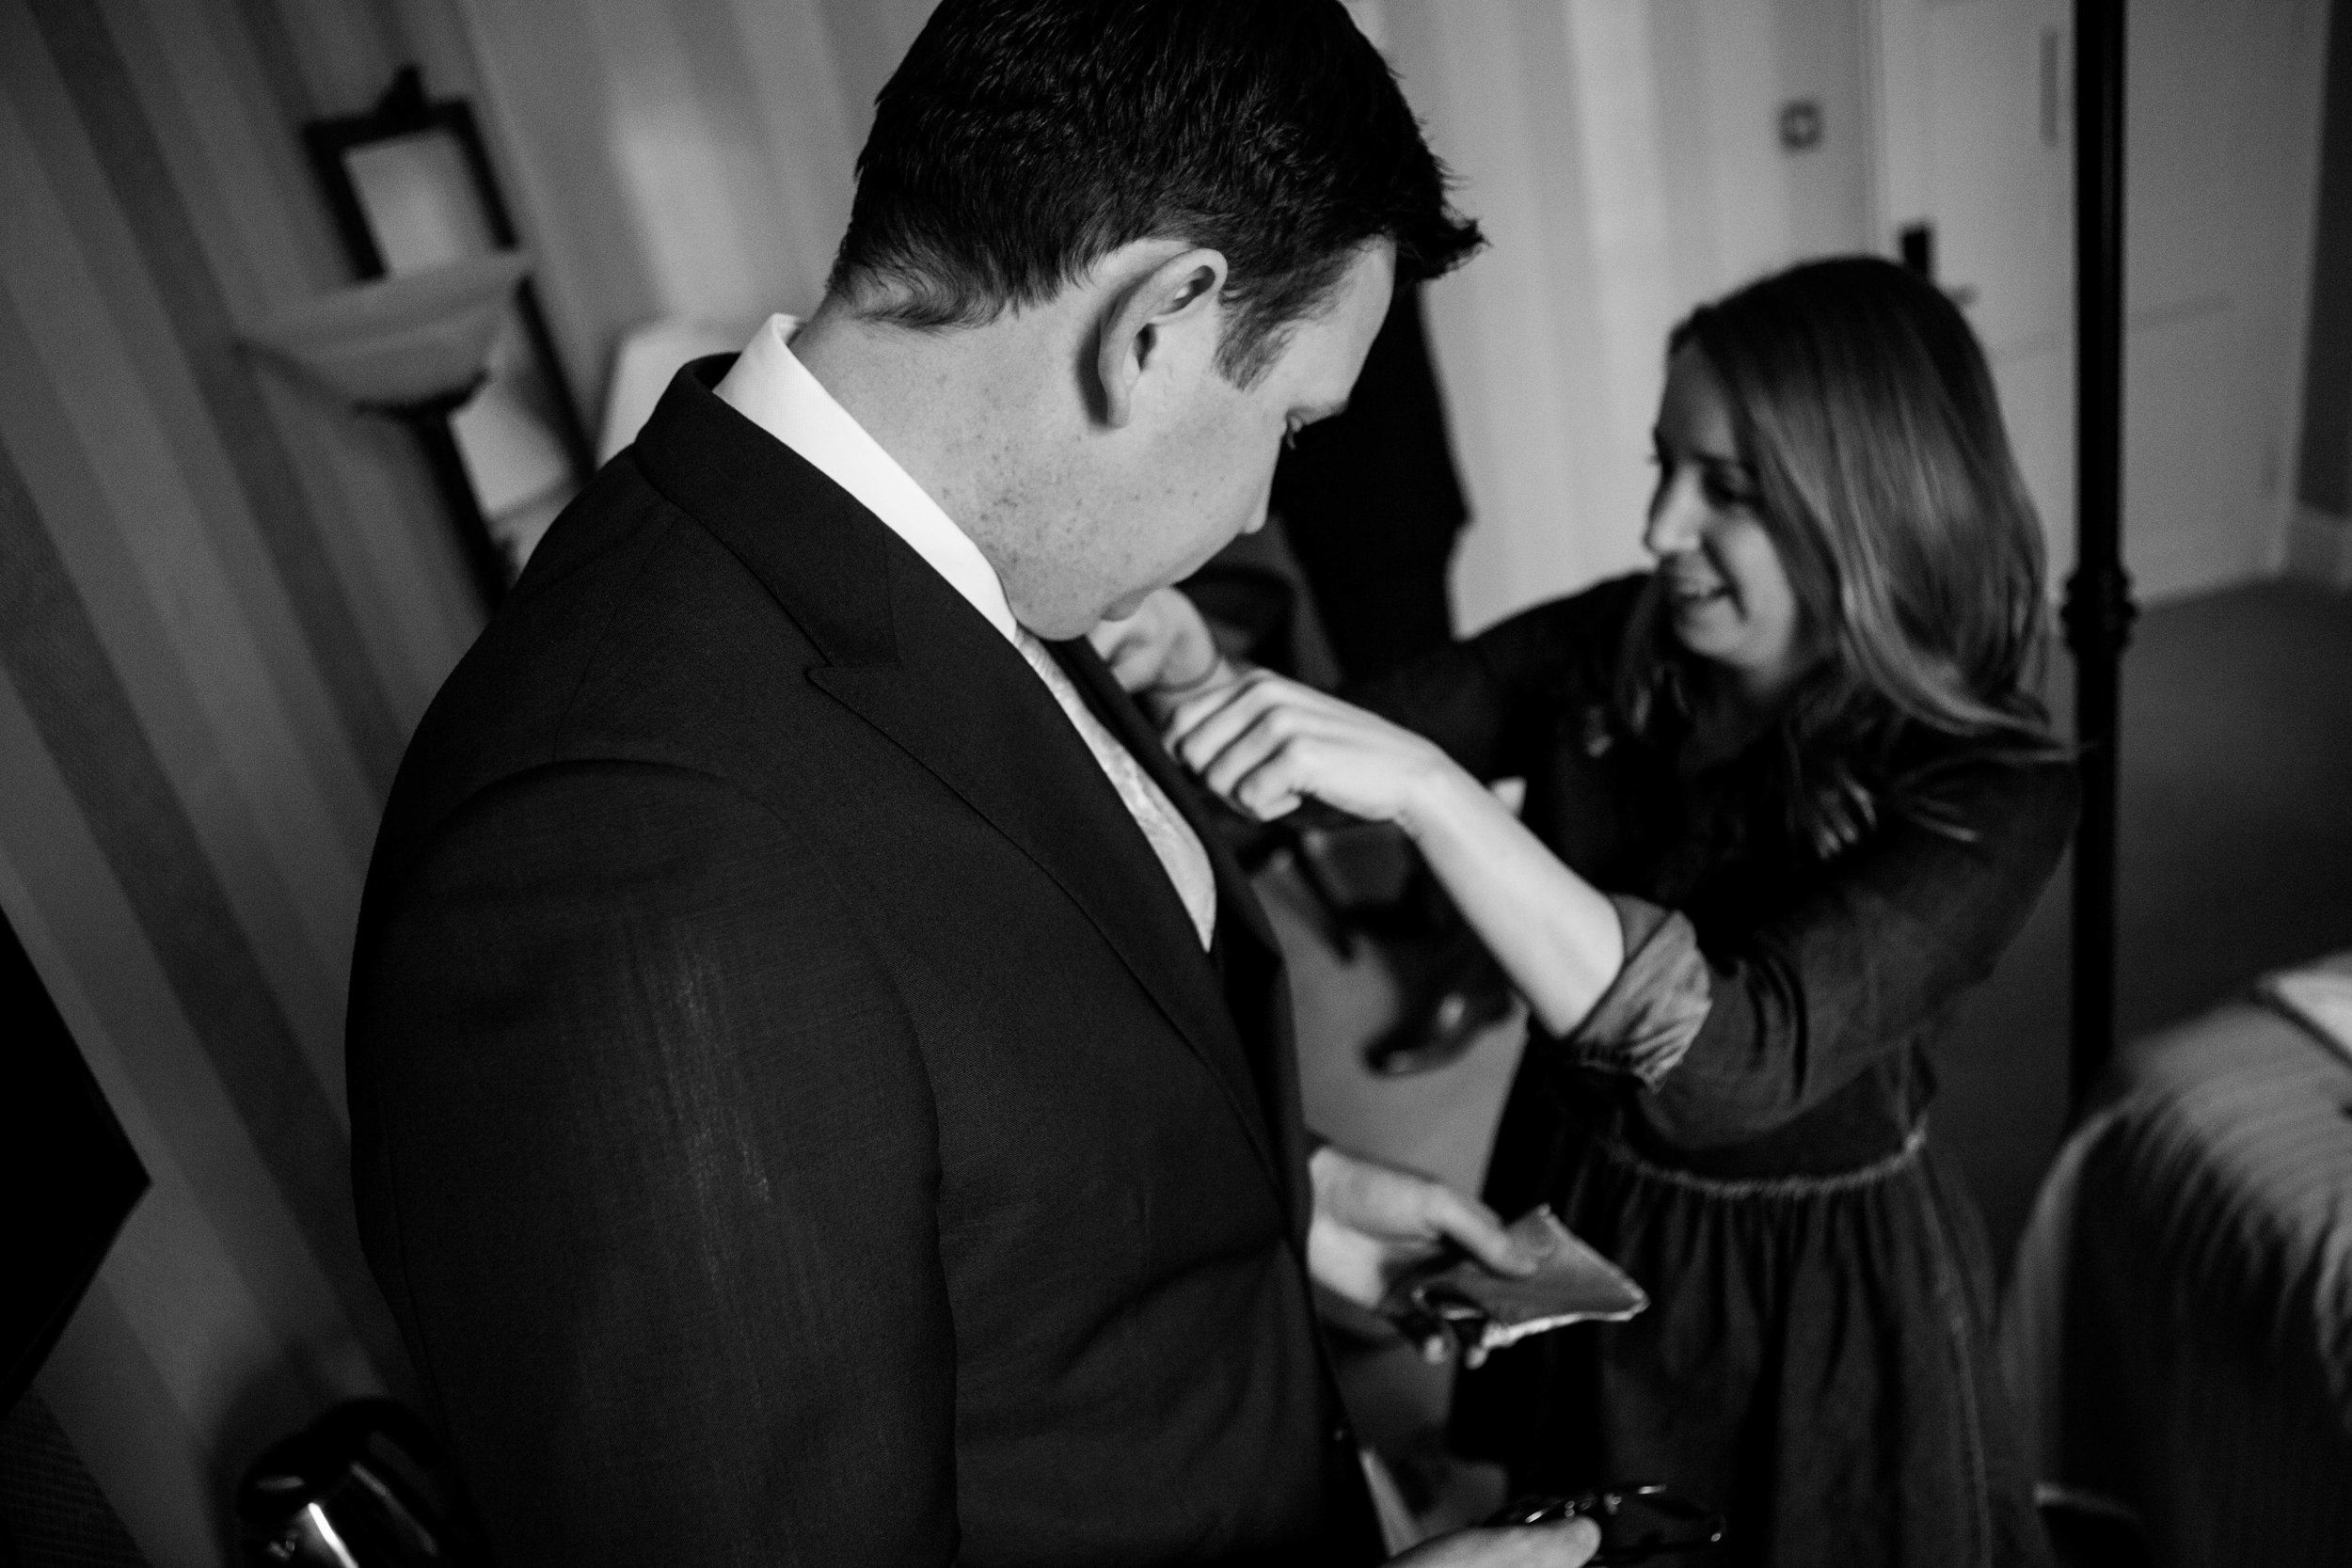 NLPhotography_Taplow_House-Wedding_Photographer_Emily&Alan_BnW-121.jpg